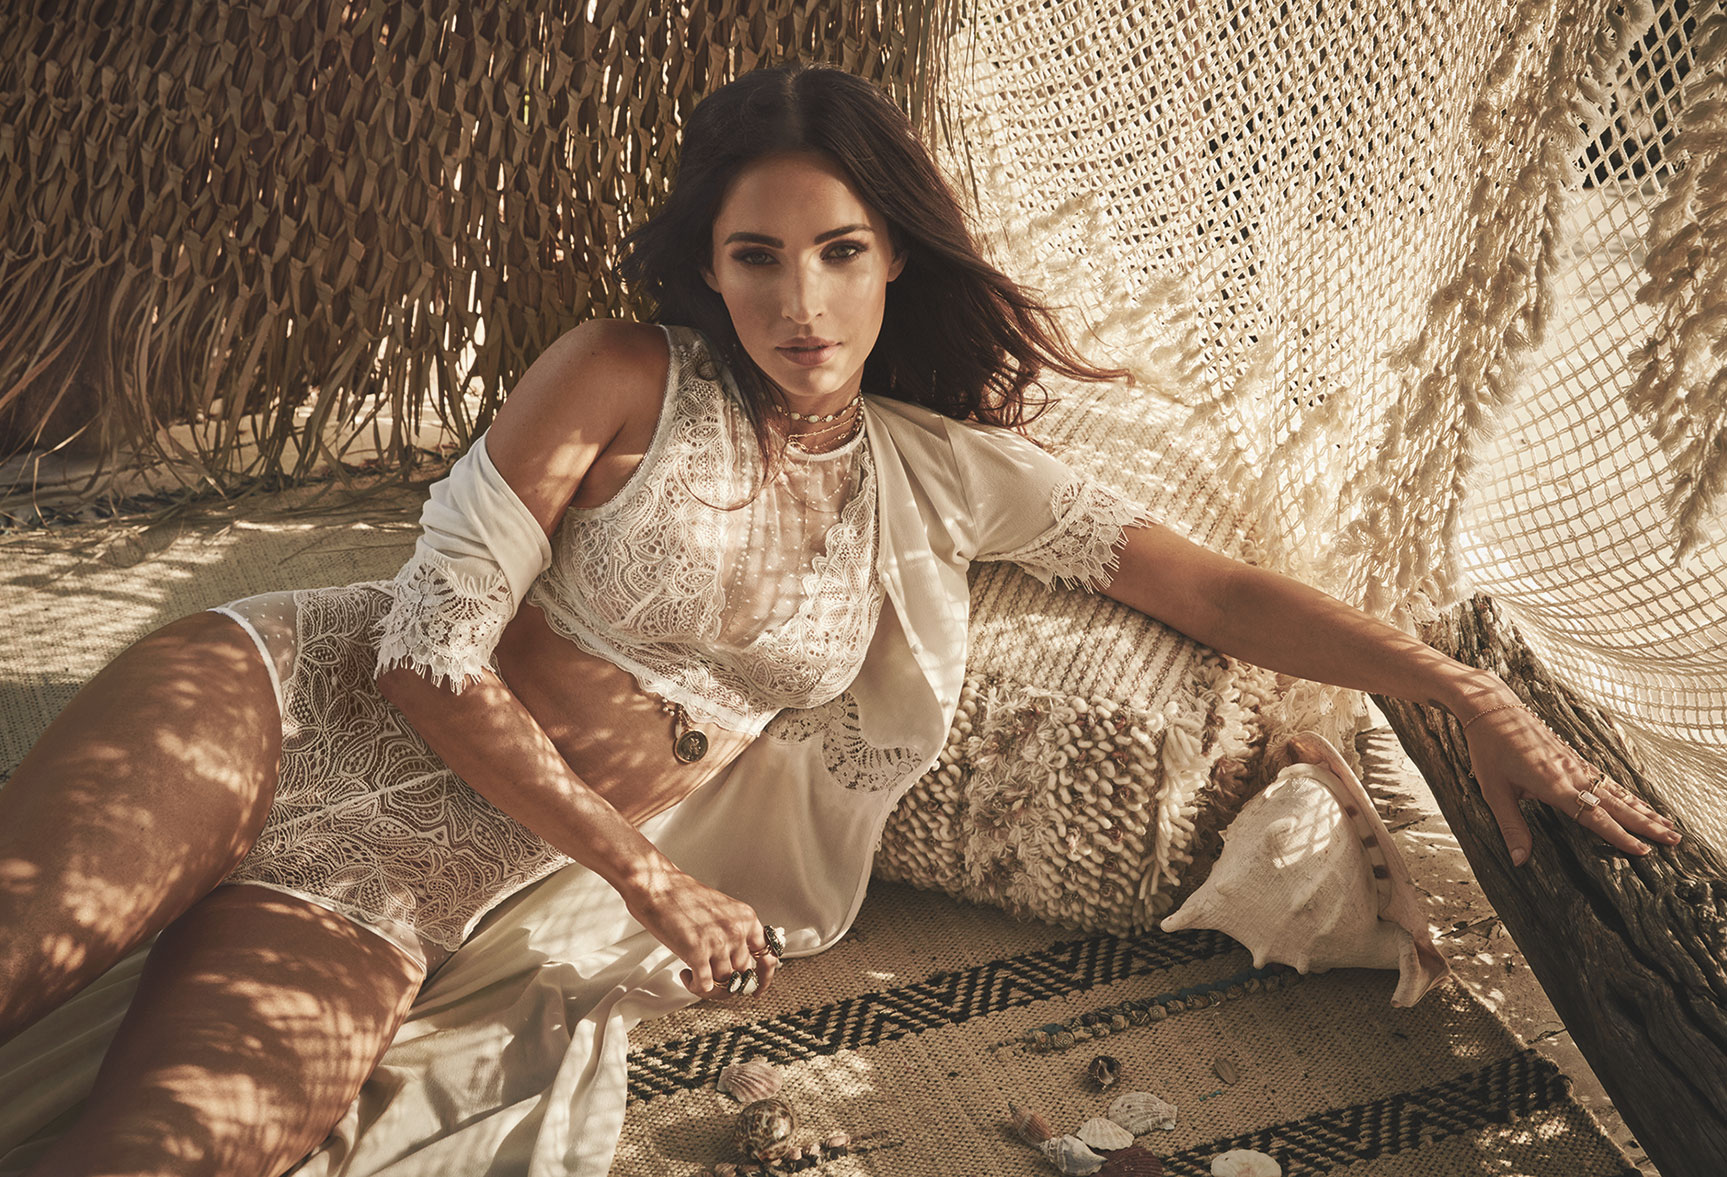 Меган Фокс в нижнем белье Fredericks of Hollywood spring 2018 / Megan Fox by James Macari